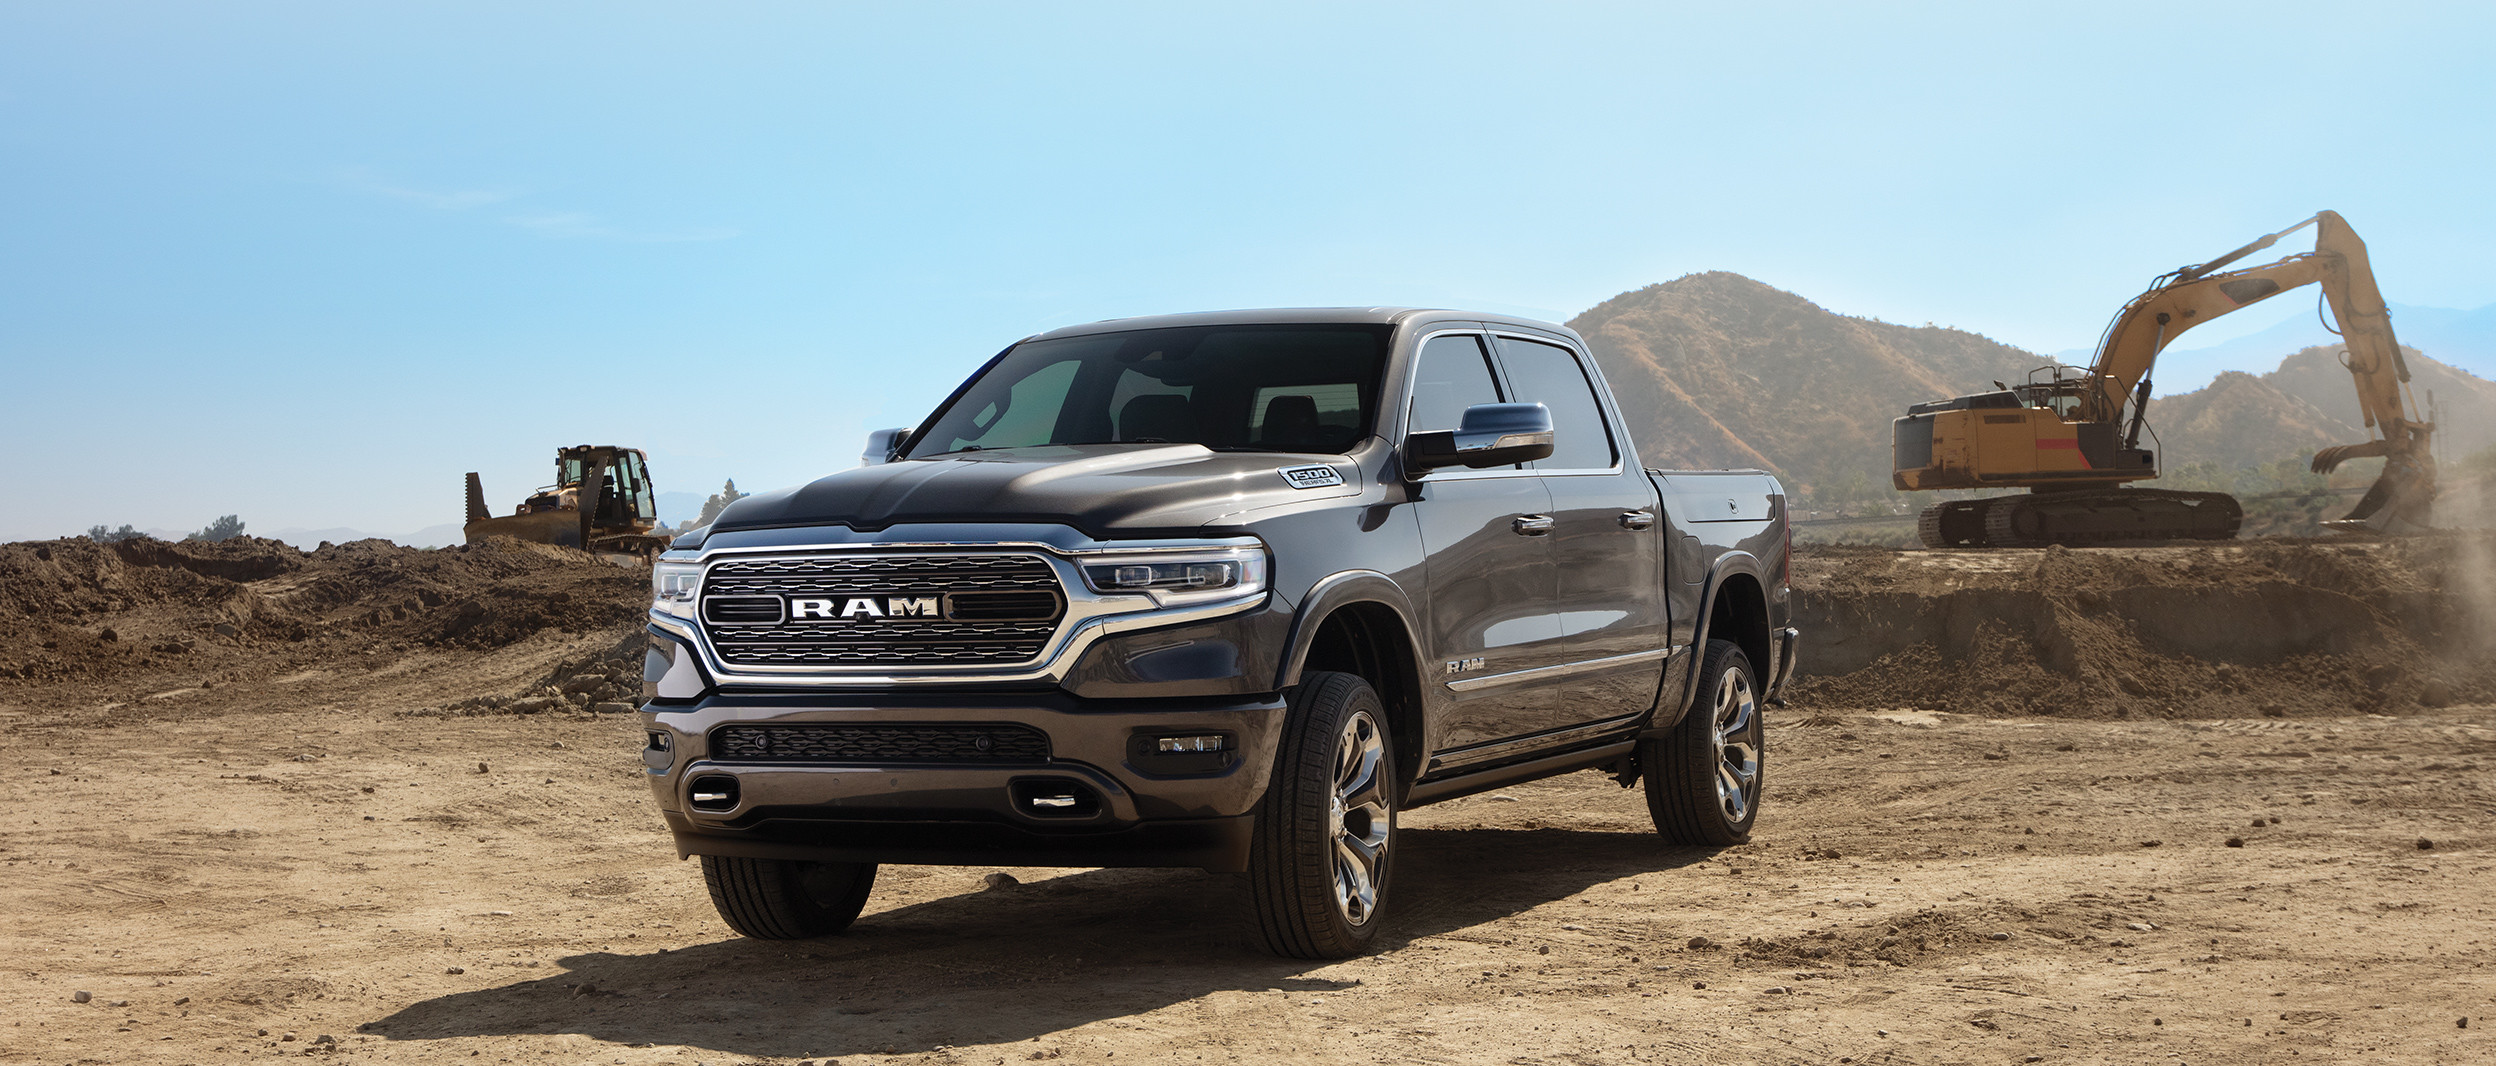 Black 2019 Ram 1500, parked on the dirt in a construction zone.